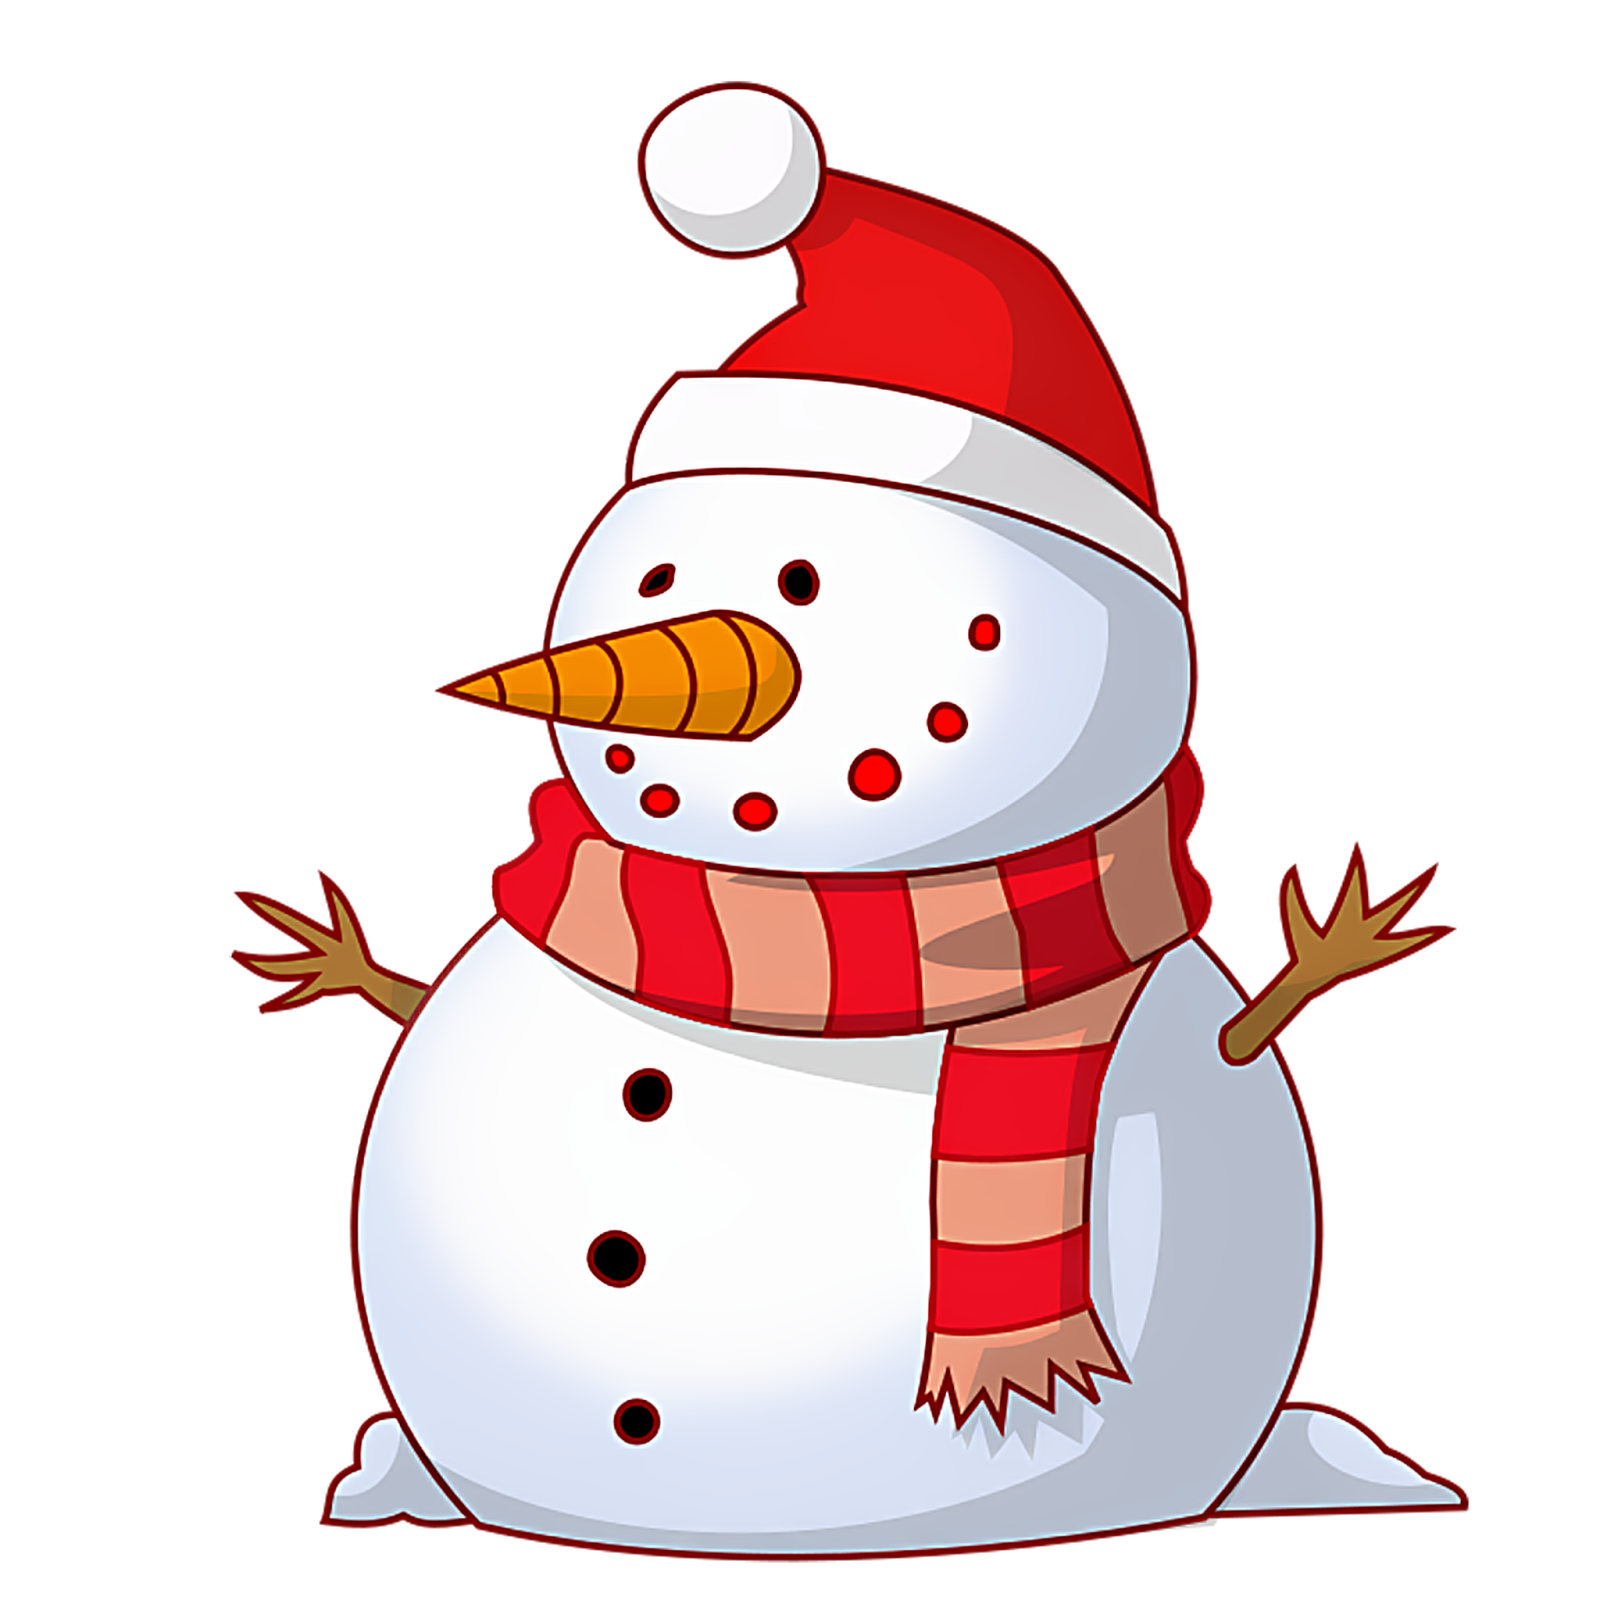 happy new year: Free Christmas Clip Arts Images in High Resolution